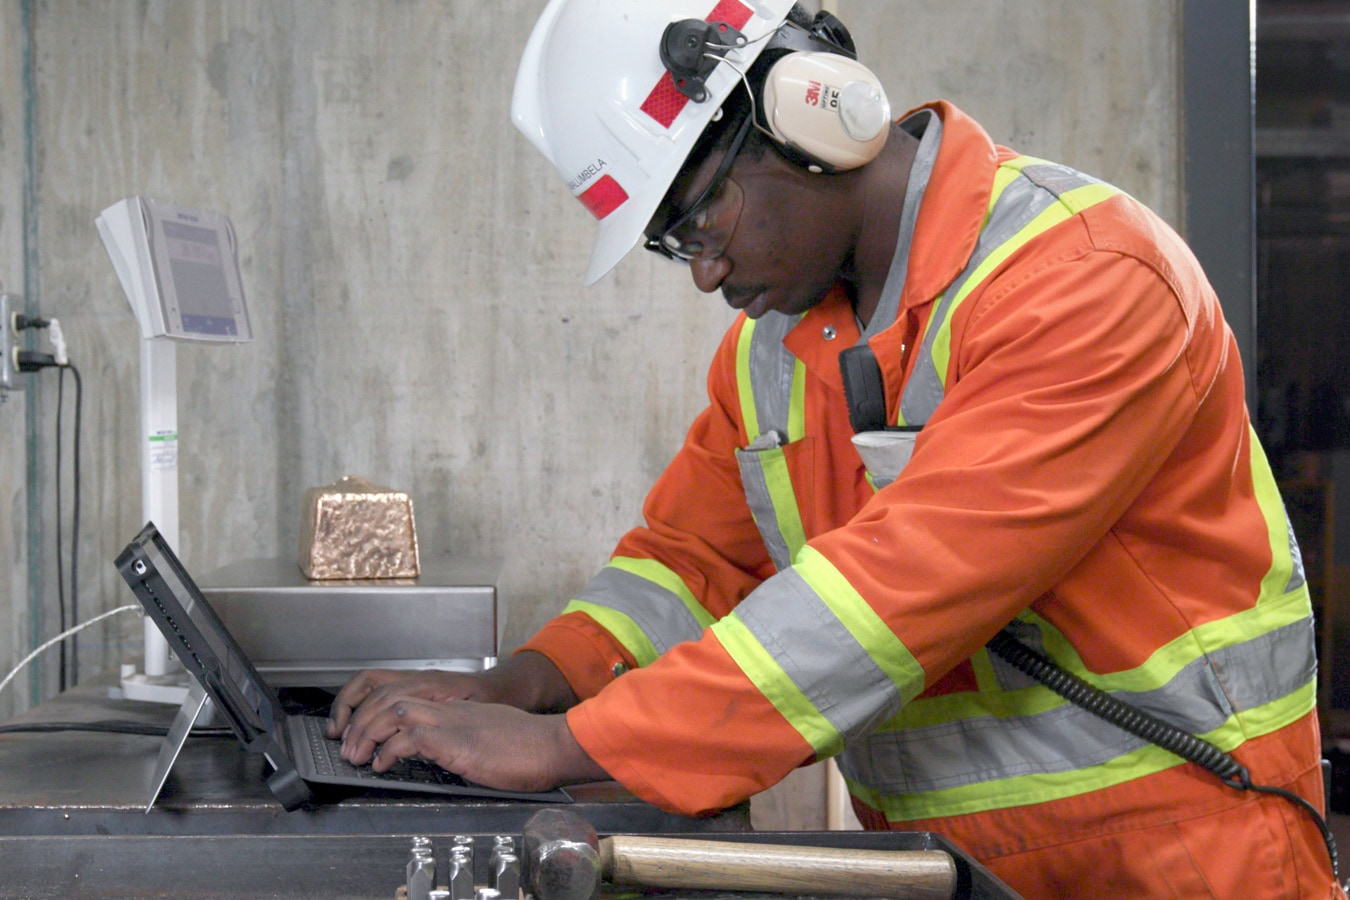 A mining engineer works with Surface Pro on the job site